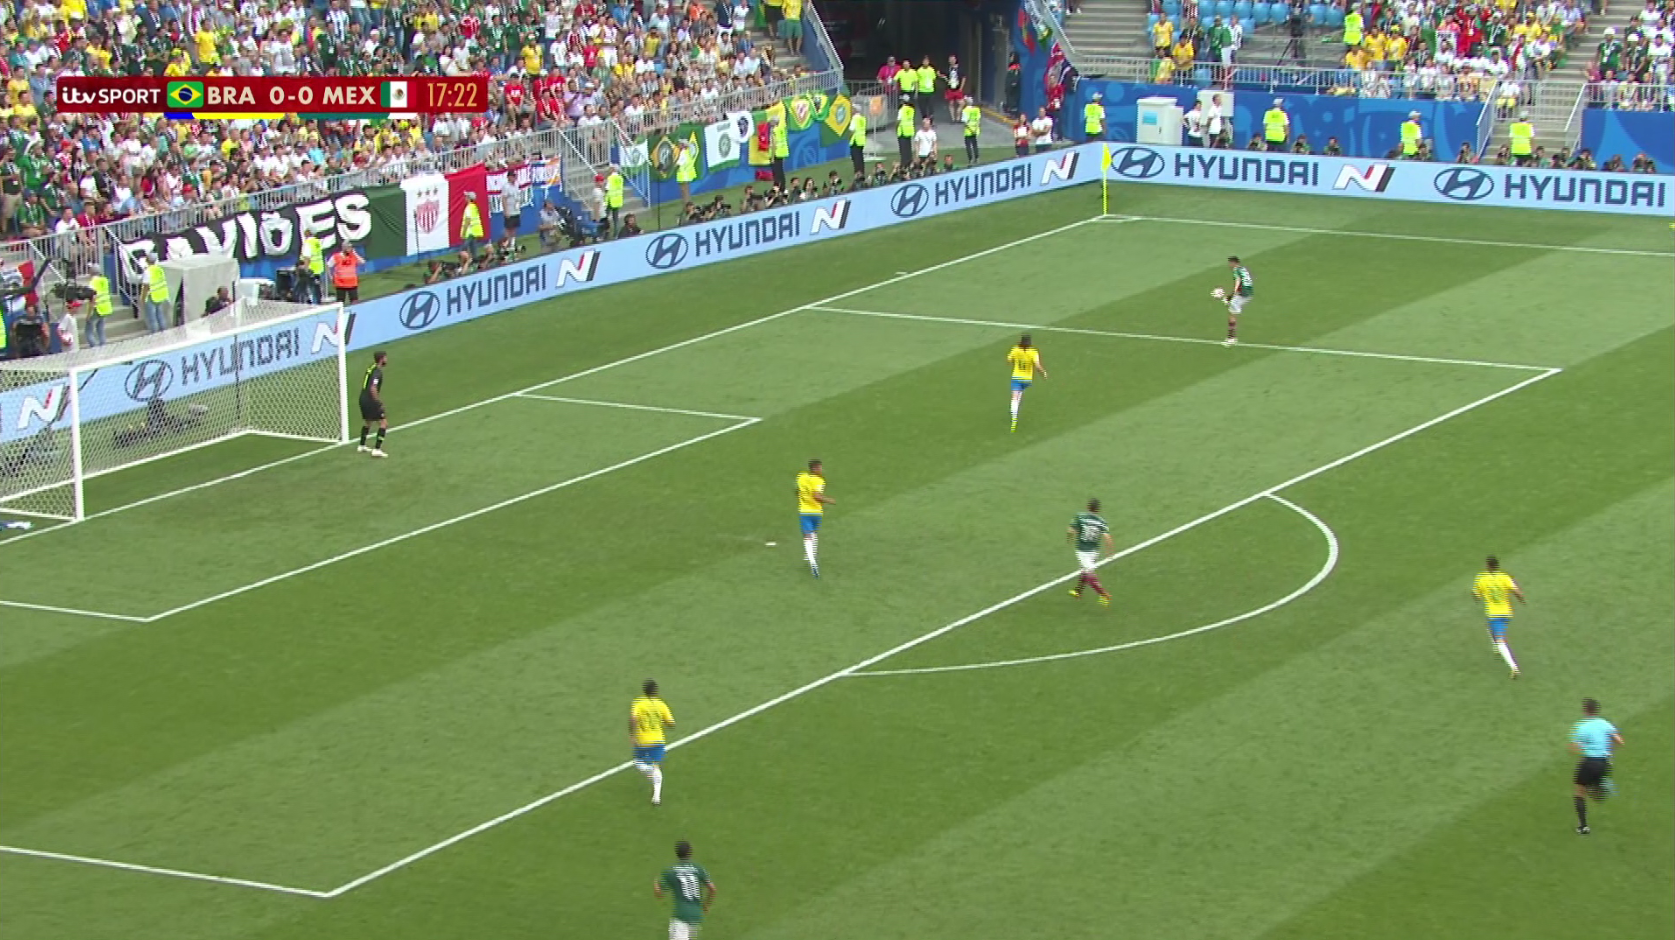 Believe it or not, Brazil had a corner 10 seconds ago…